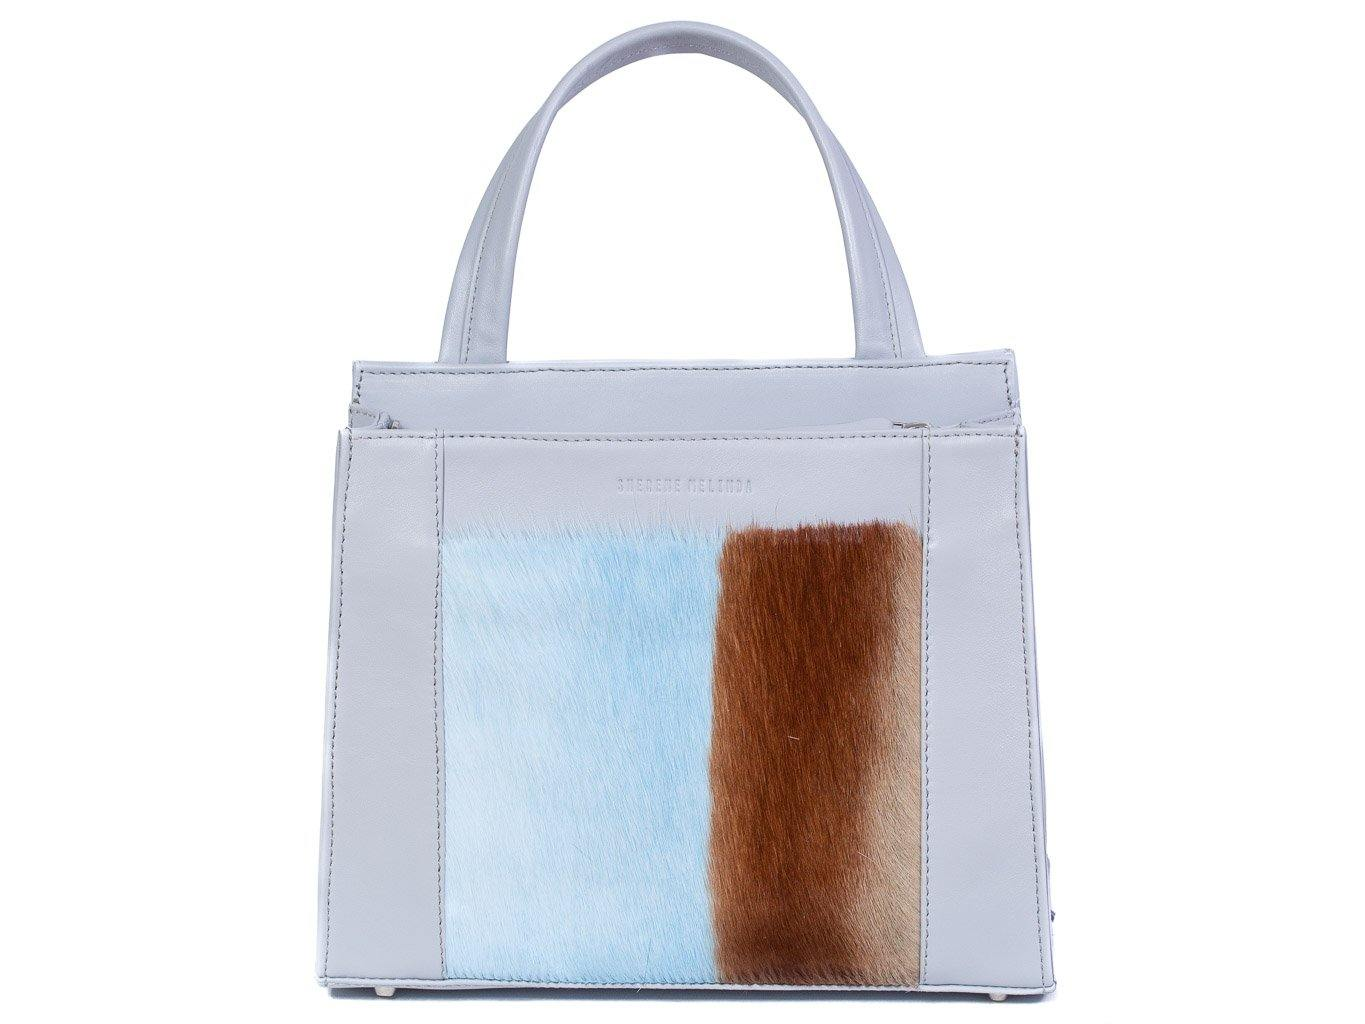 Top Handle Springbok Handbag in Baby Blue with a stripe feature by Sherene Melinda front